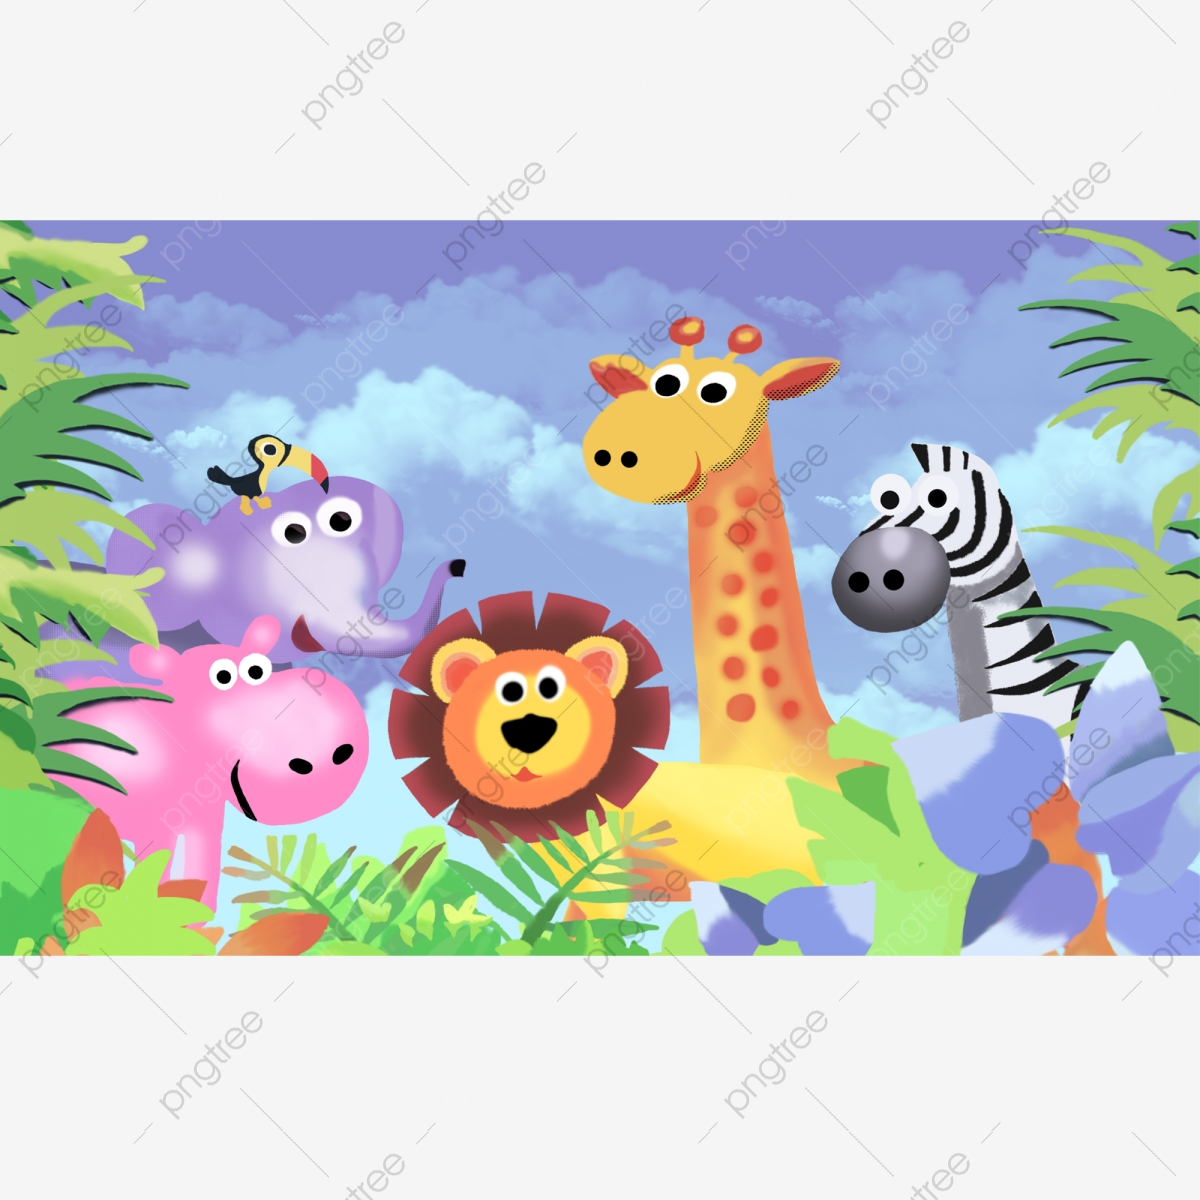 Safari Png Images Vector And Psd Files Free Download On Pngtree Thousands of new elephant png image resources are added every day. https pngtree com freepng family safari happy 5337116 html